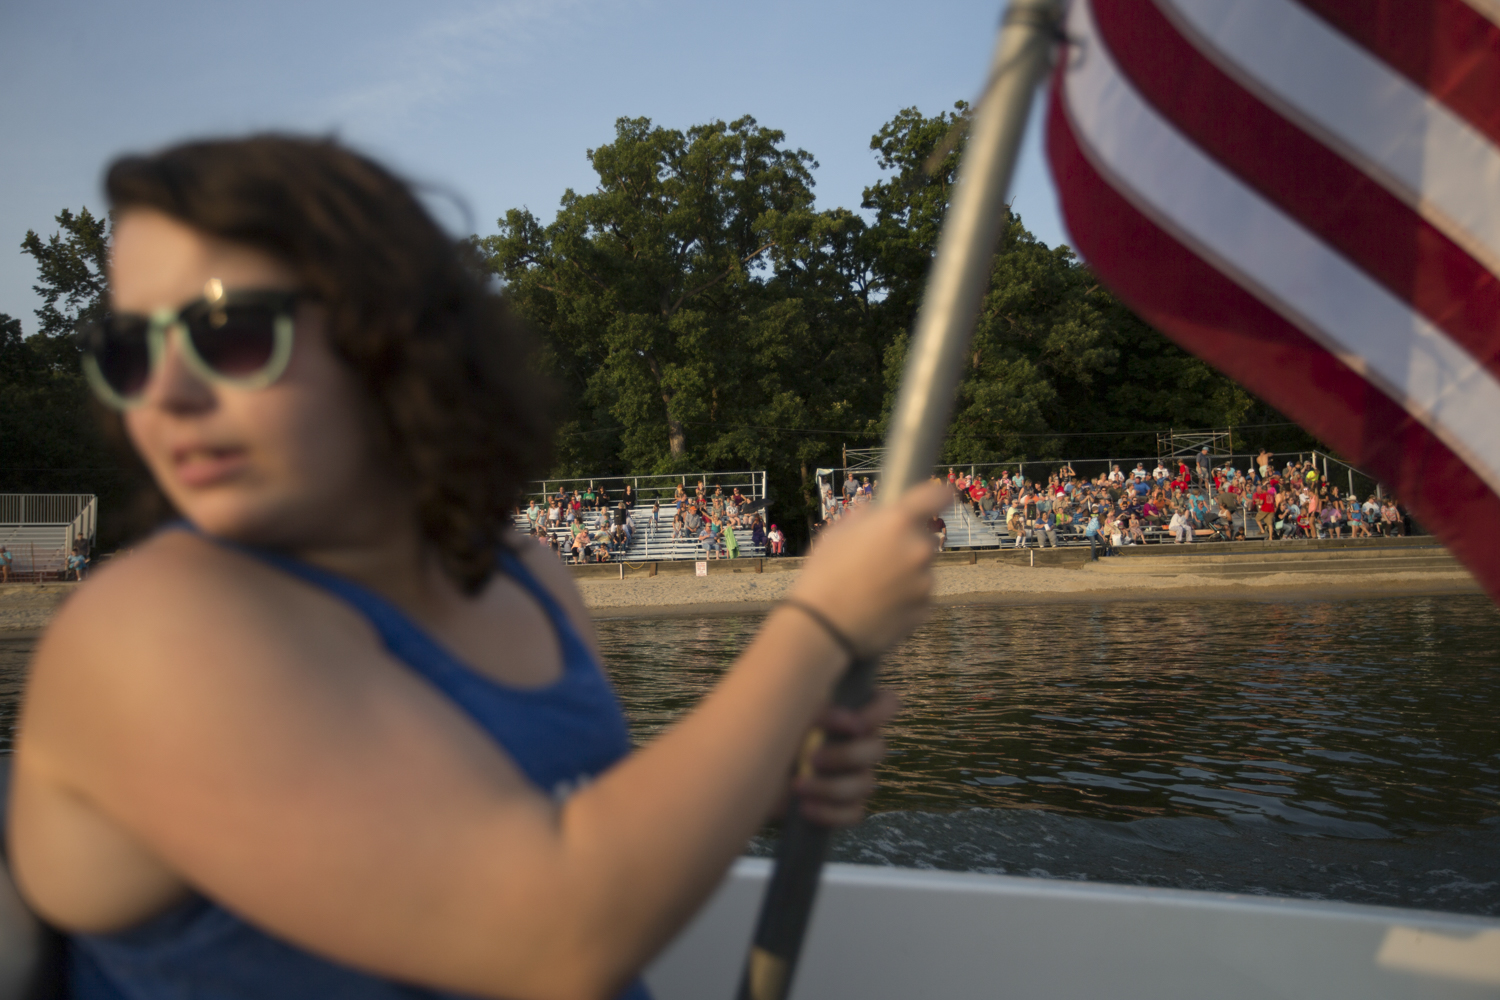 Cassie Fleener, a spotter, holds the American flag during the national anthem prior to a Ski Broncs summer show on Friday, Aug. 3. The boat makes circles in the river in front of the grandstands during the anthem. During the show, Fleener and her teammate, boat driver Ron Anderson, operate a 600 horse power-engine boat that generally pulls the larger group formations. [SCOTT P. YATES/RRSTAR.COM STAFF]